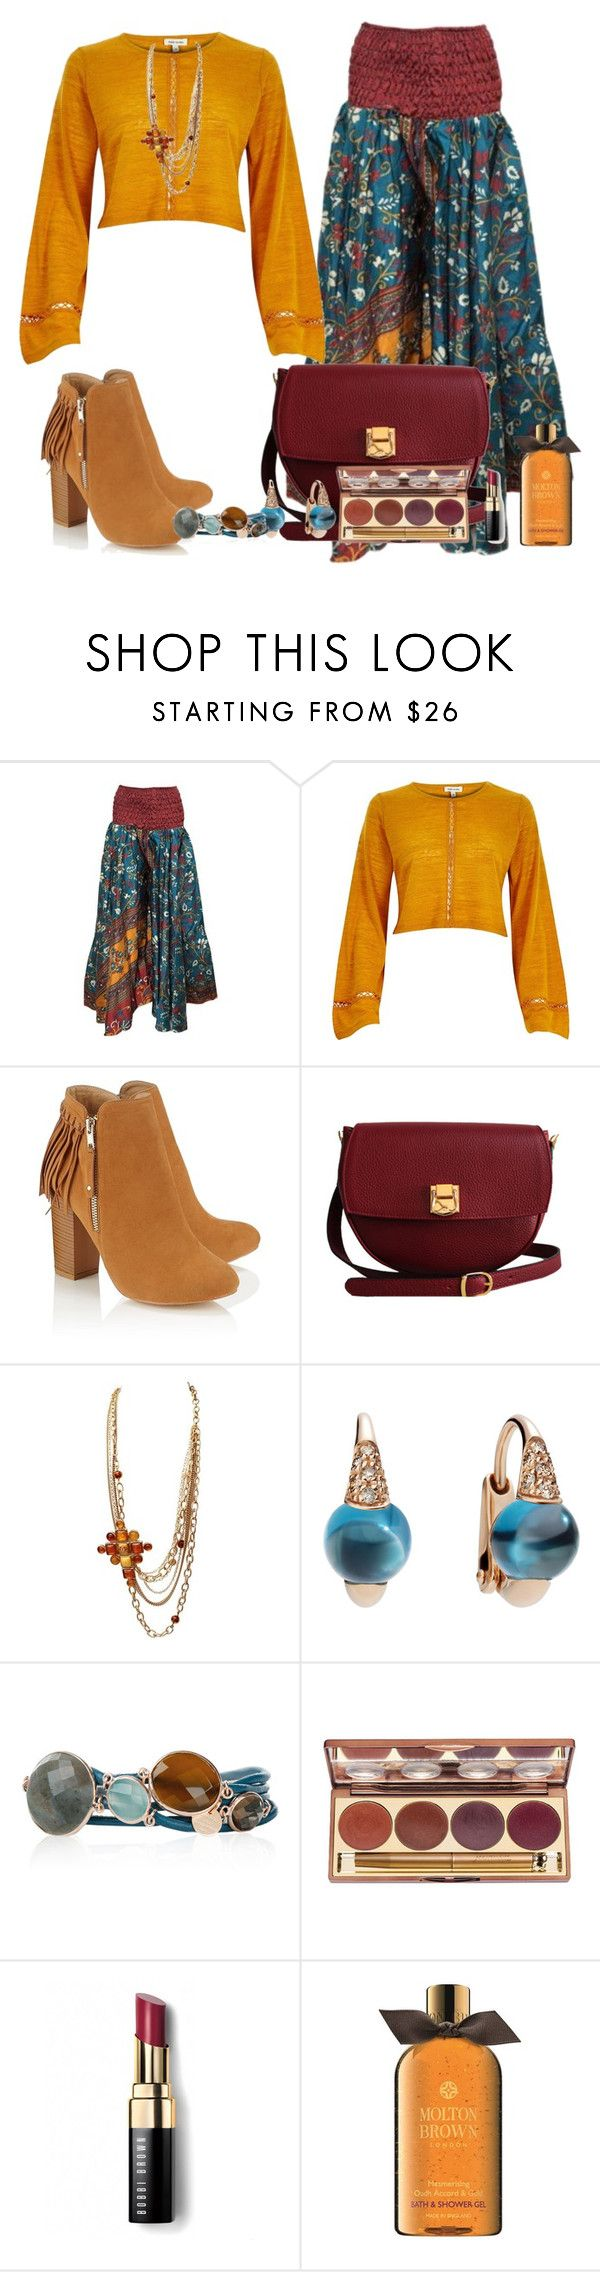 """River Island Dark Yellow Bell Sleeve Crop Top"" by akgsteeler ❤ liked on Polyvore featuring River Island, Lipsy, The Code, Pomellato, Marjana von Berlepsch, Jane Iredale, Bobbi Brown Cosmetics and Molton Brown"